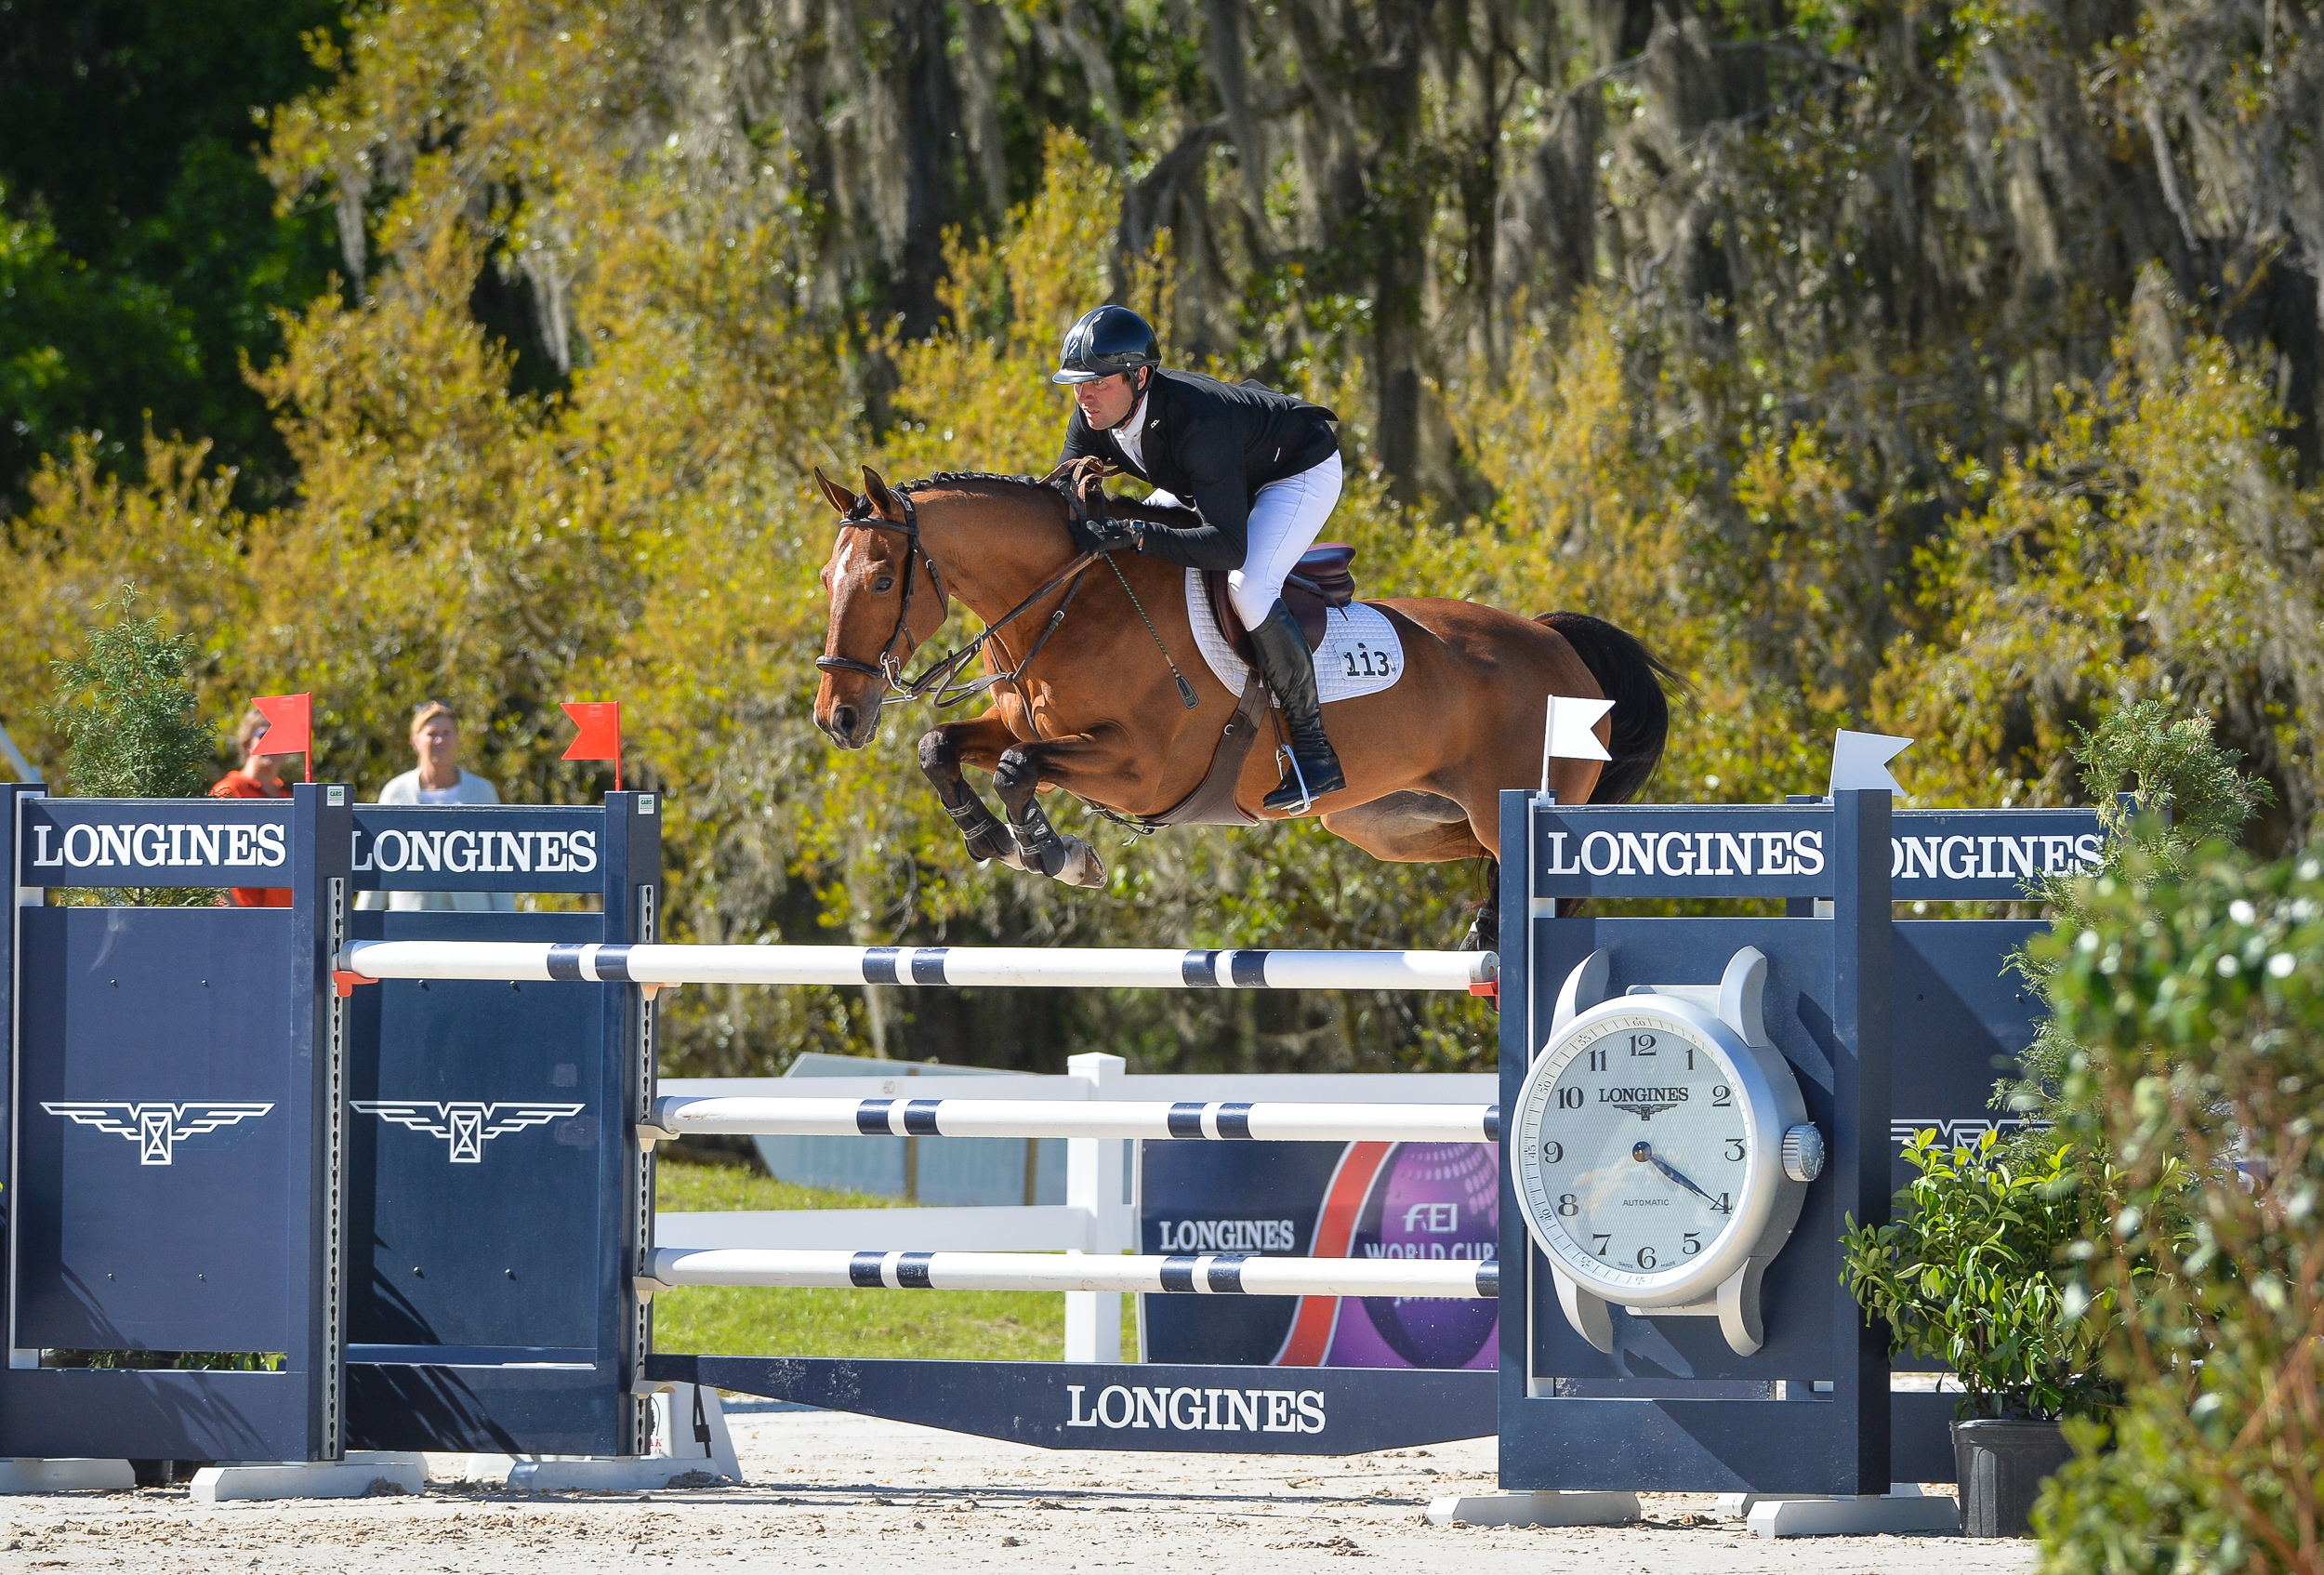 World Equestrian Games Gold Medalists Entered at Live Oak International